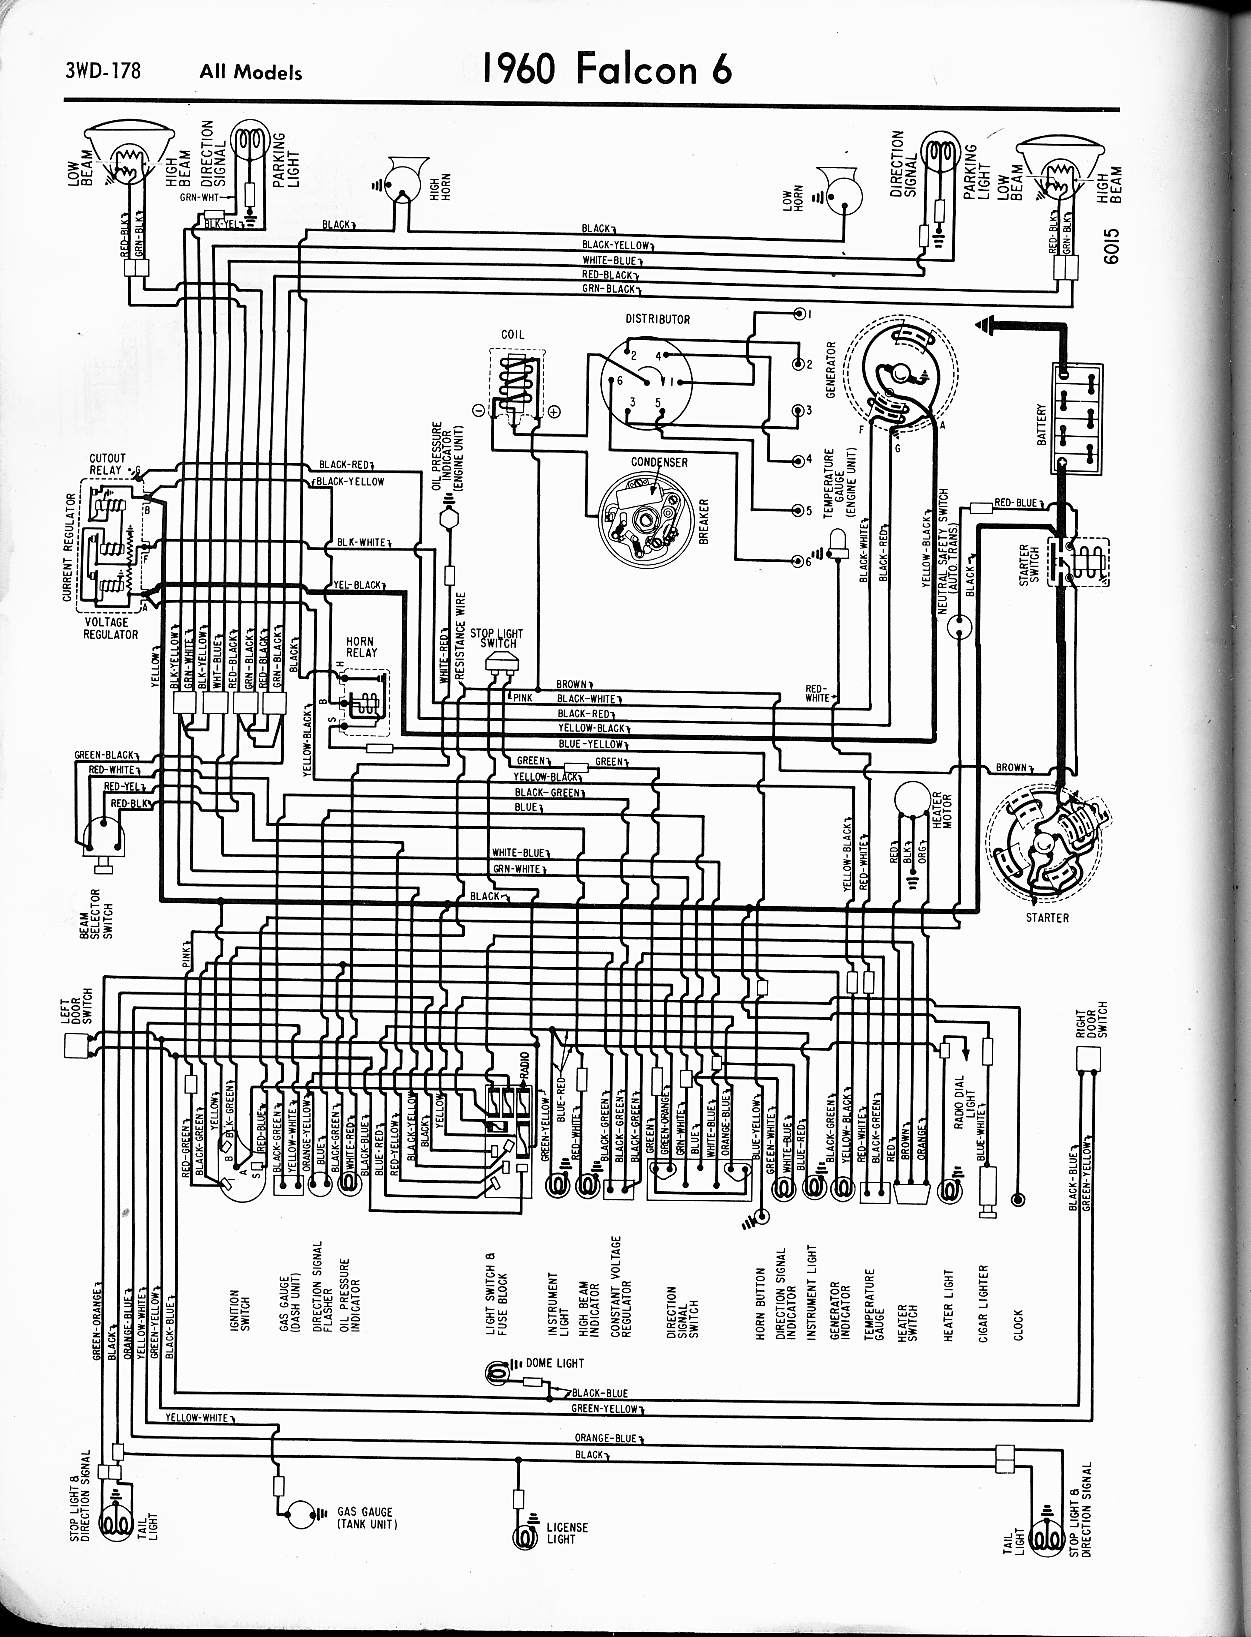 1965 Thunderbird Alternator Wiring Another Diagrams 2000 Dodge Ram 66 Ford Mustang Window Diagram Great Design Of Rh Homewerk Co